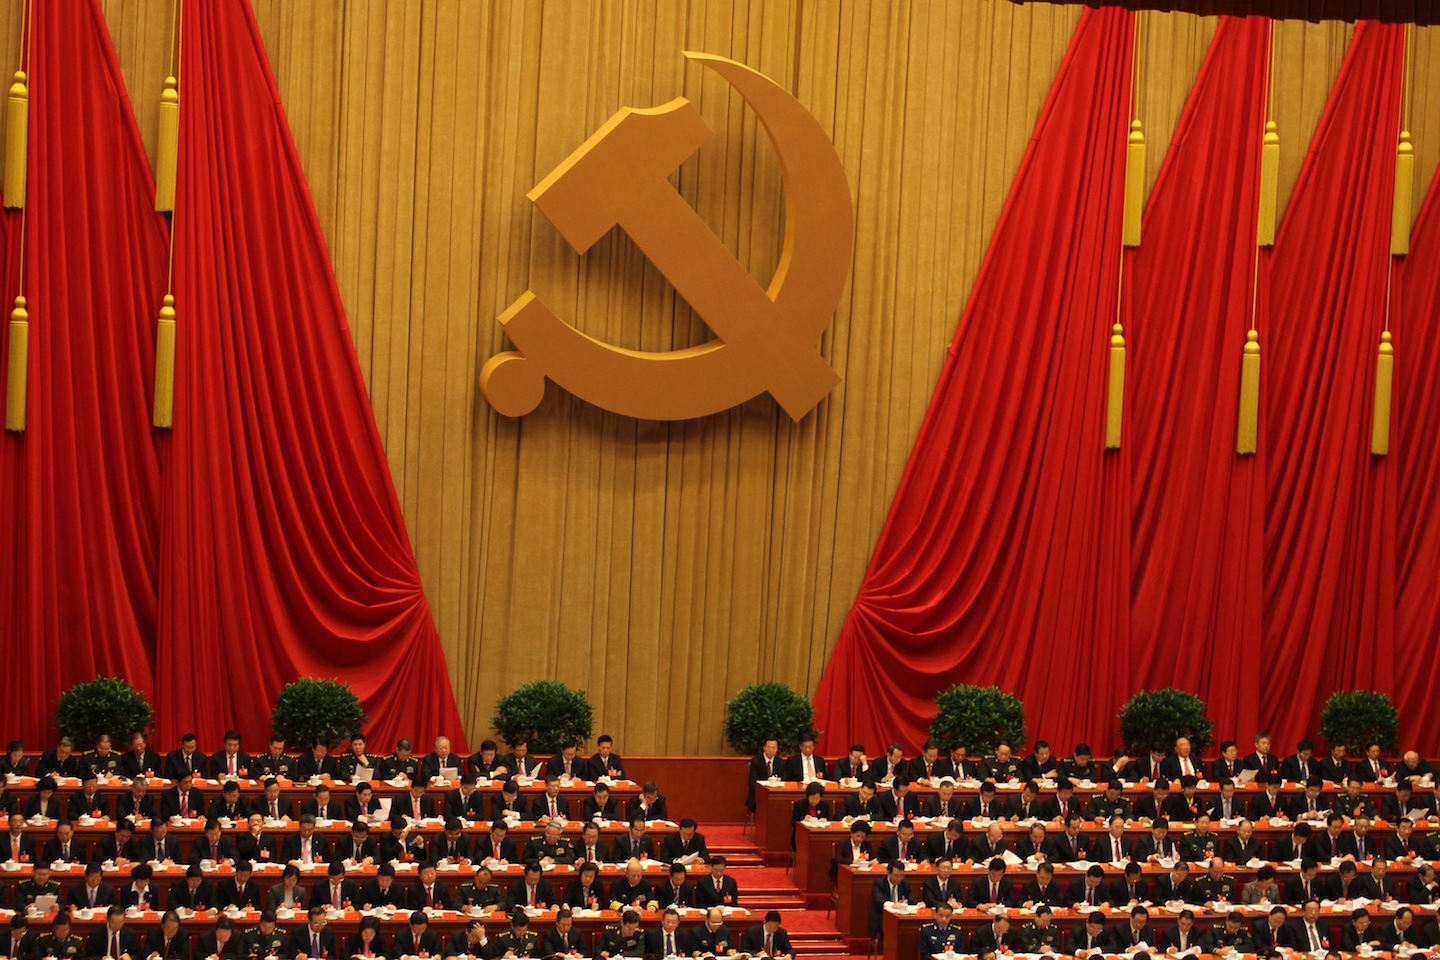 Image: China is successfully targeting US members of Congress with communist influence campaigns, warns DNI Ratcliffe